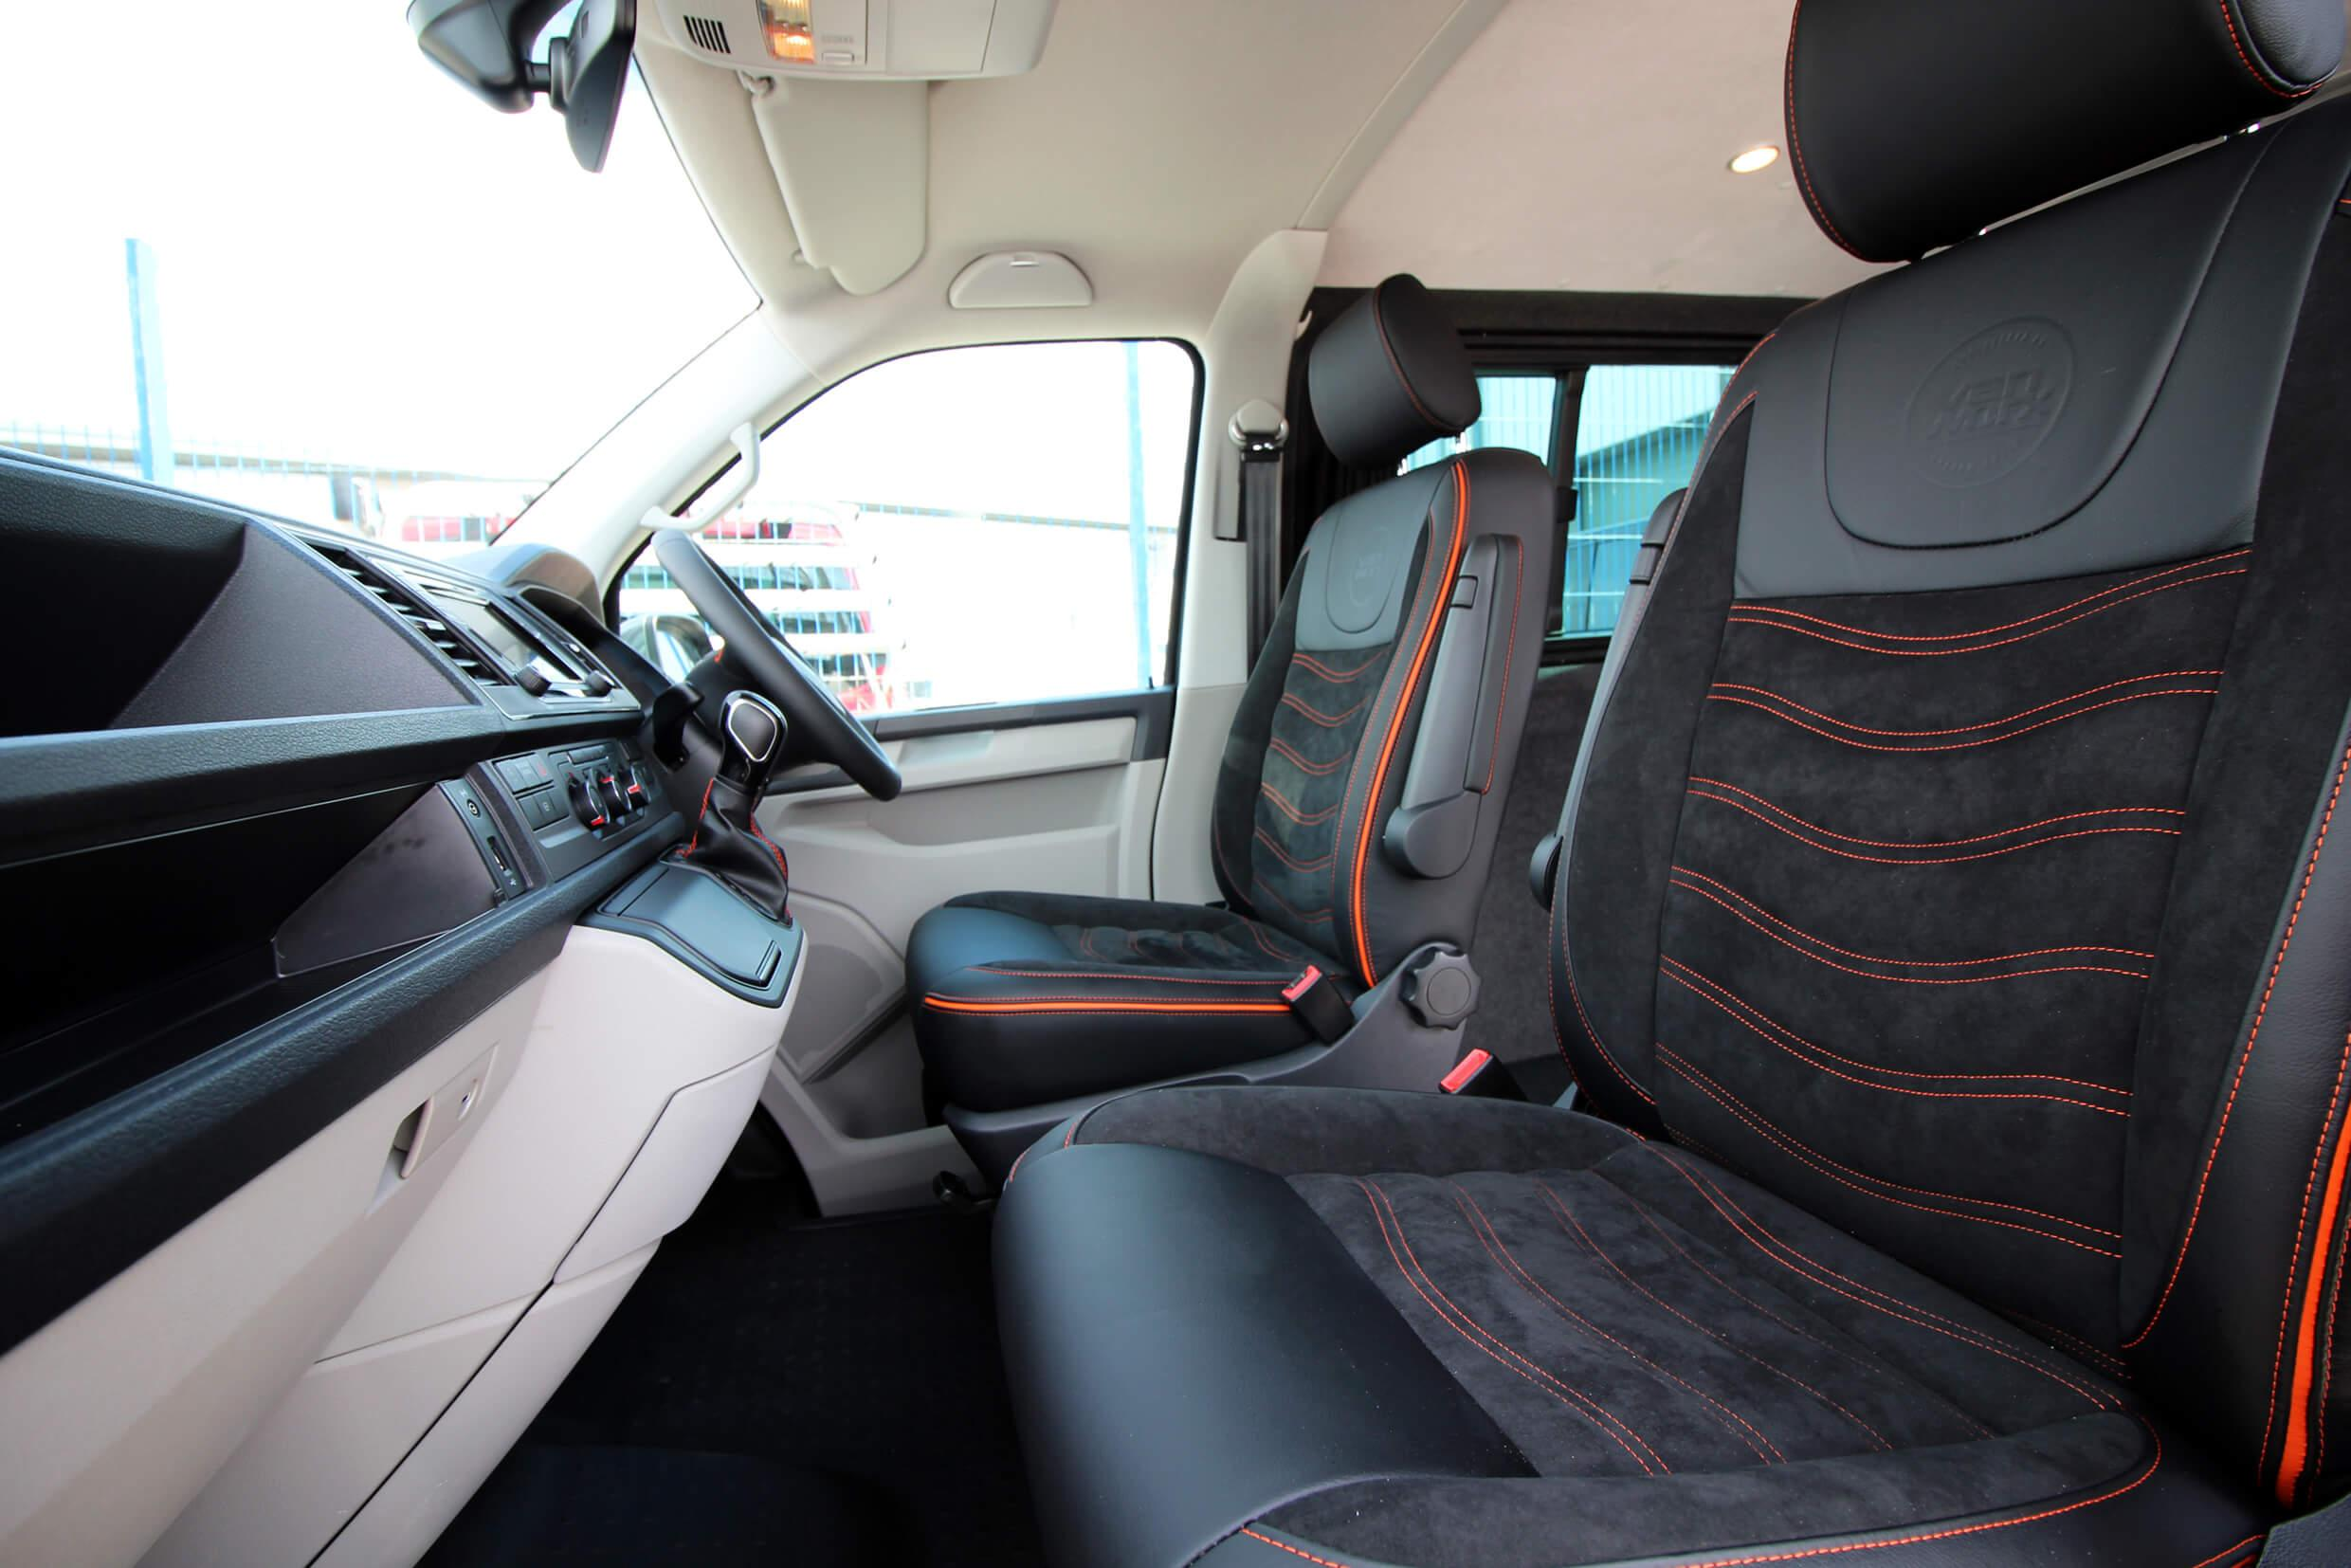 VW leather crafted by hand for luxury finish in variety of colours